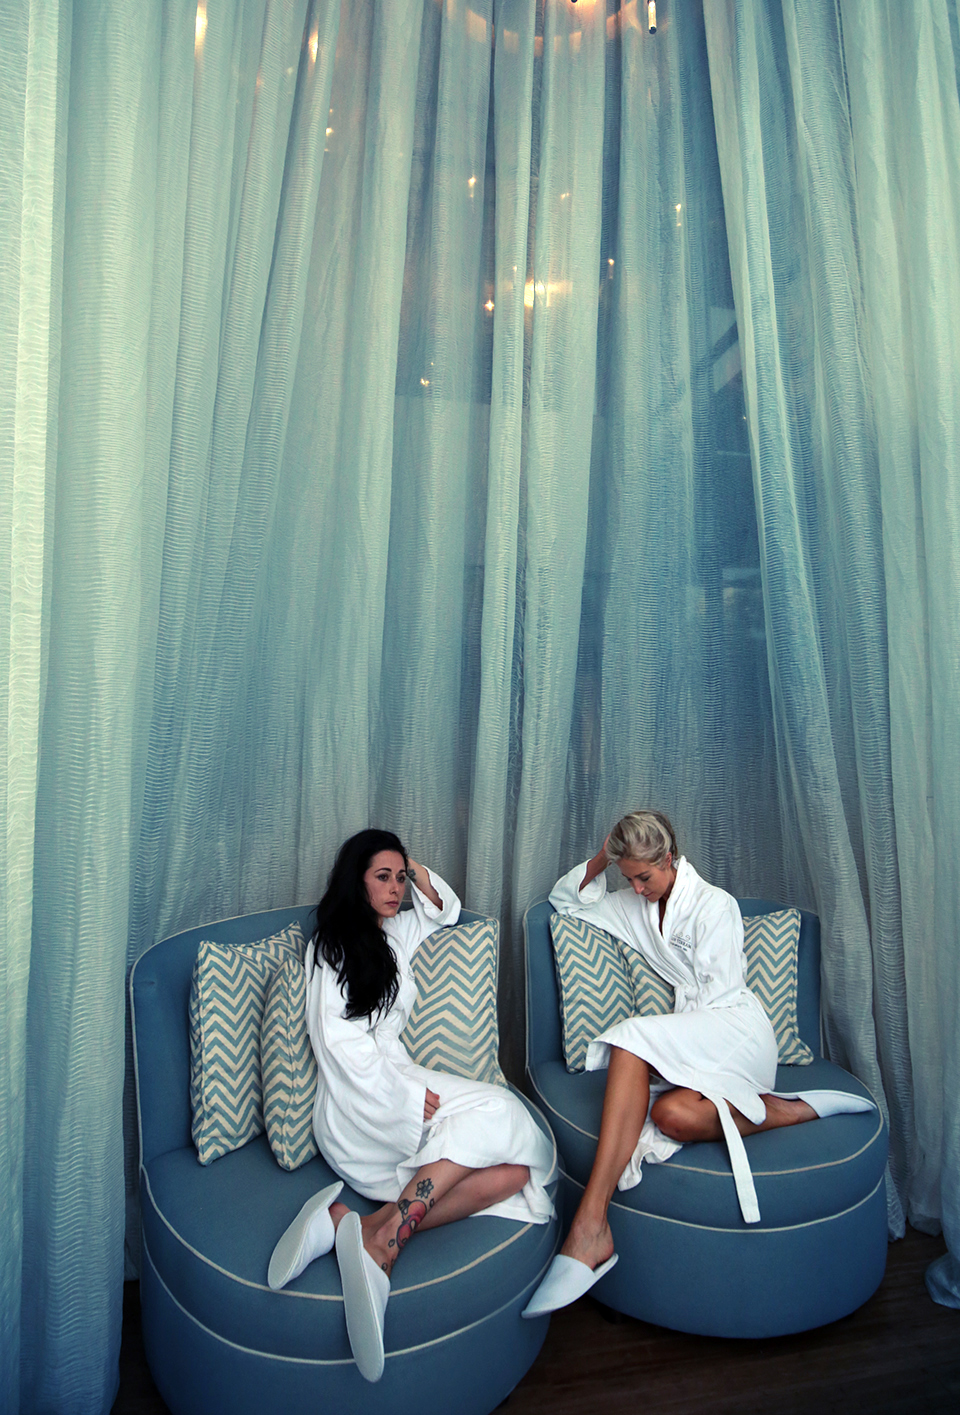 Relaxing with my sis after a spa at the beautiful Fairmont Zimbali resort...